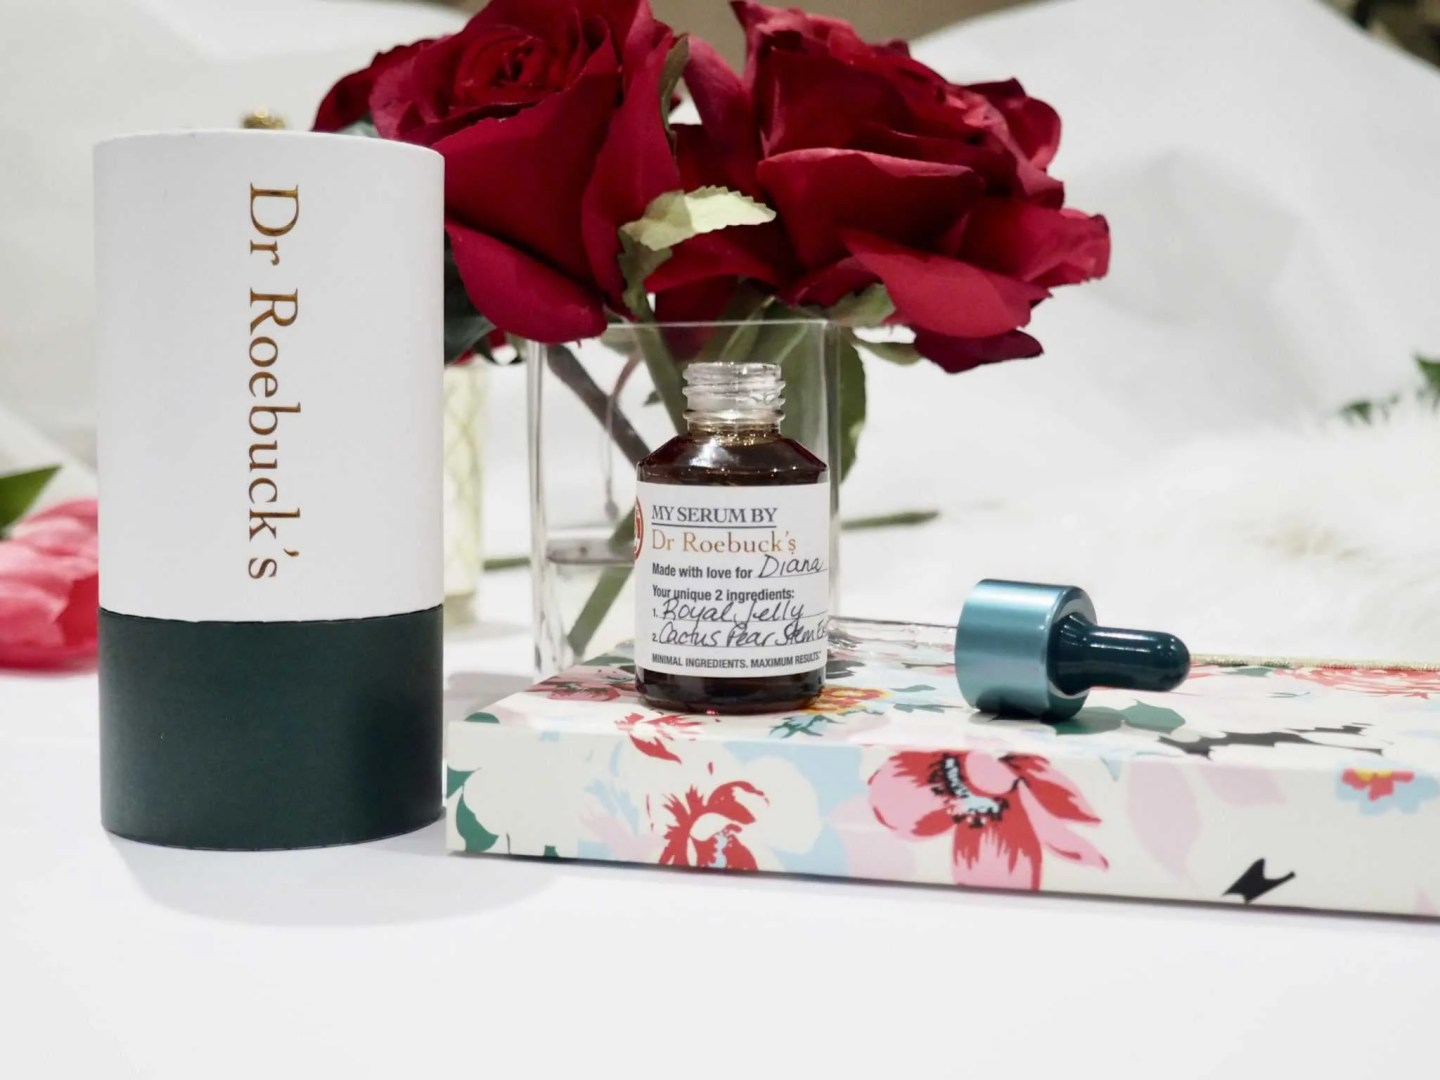 Dr Roebuck's Customized Beauty With Minimal Ingredients